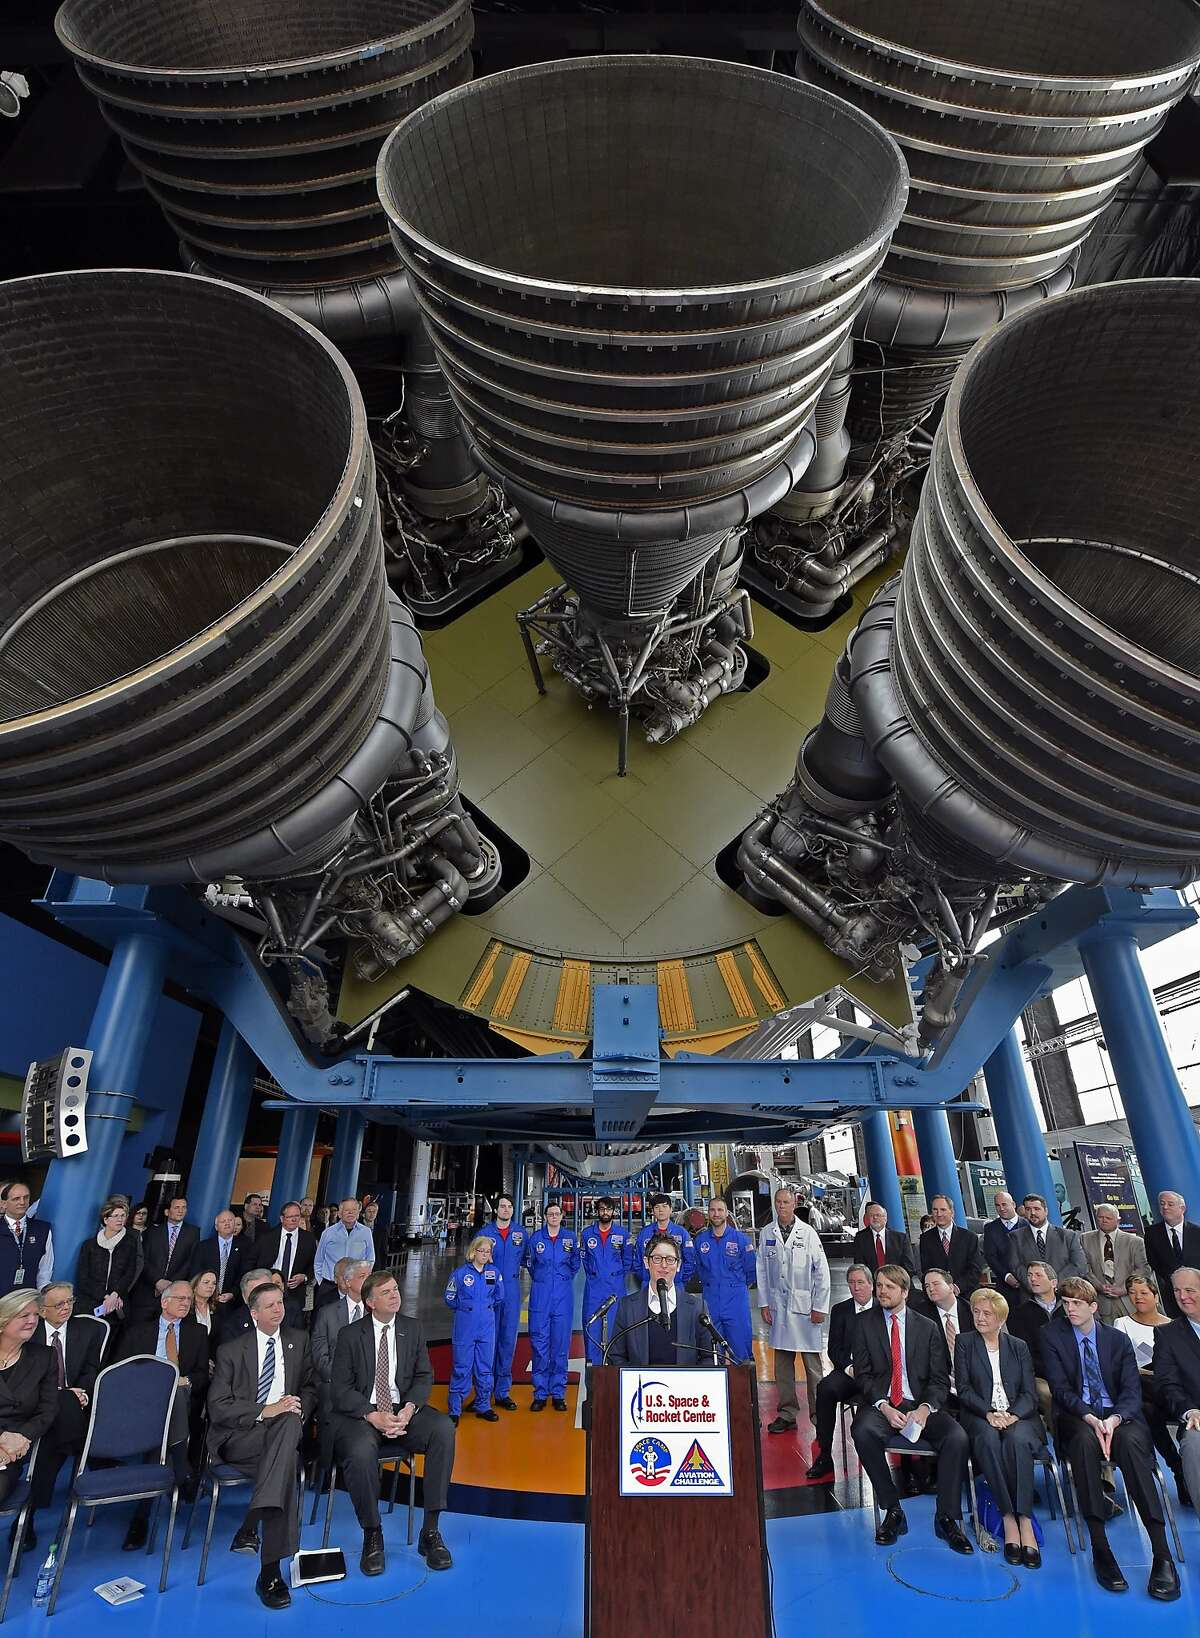 Jill Szuchmacher, director of Google Fiber Expansion, speaks at news conference under a Saturn V rocket at the Davidson Center at the U.S. Space & Rocket Center on Monday, Feb. 22, 2016, announcing that Huntsville Utilities and Google will build a fiber network to bring high speed TV and Internet service to the city's residents and businesses. (Bob Gathany/AL.com via AP)